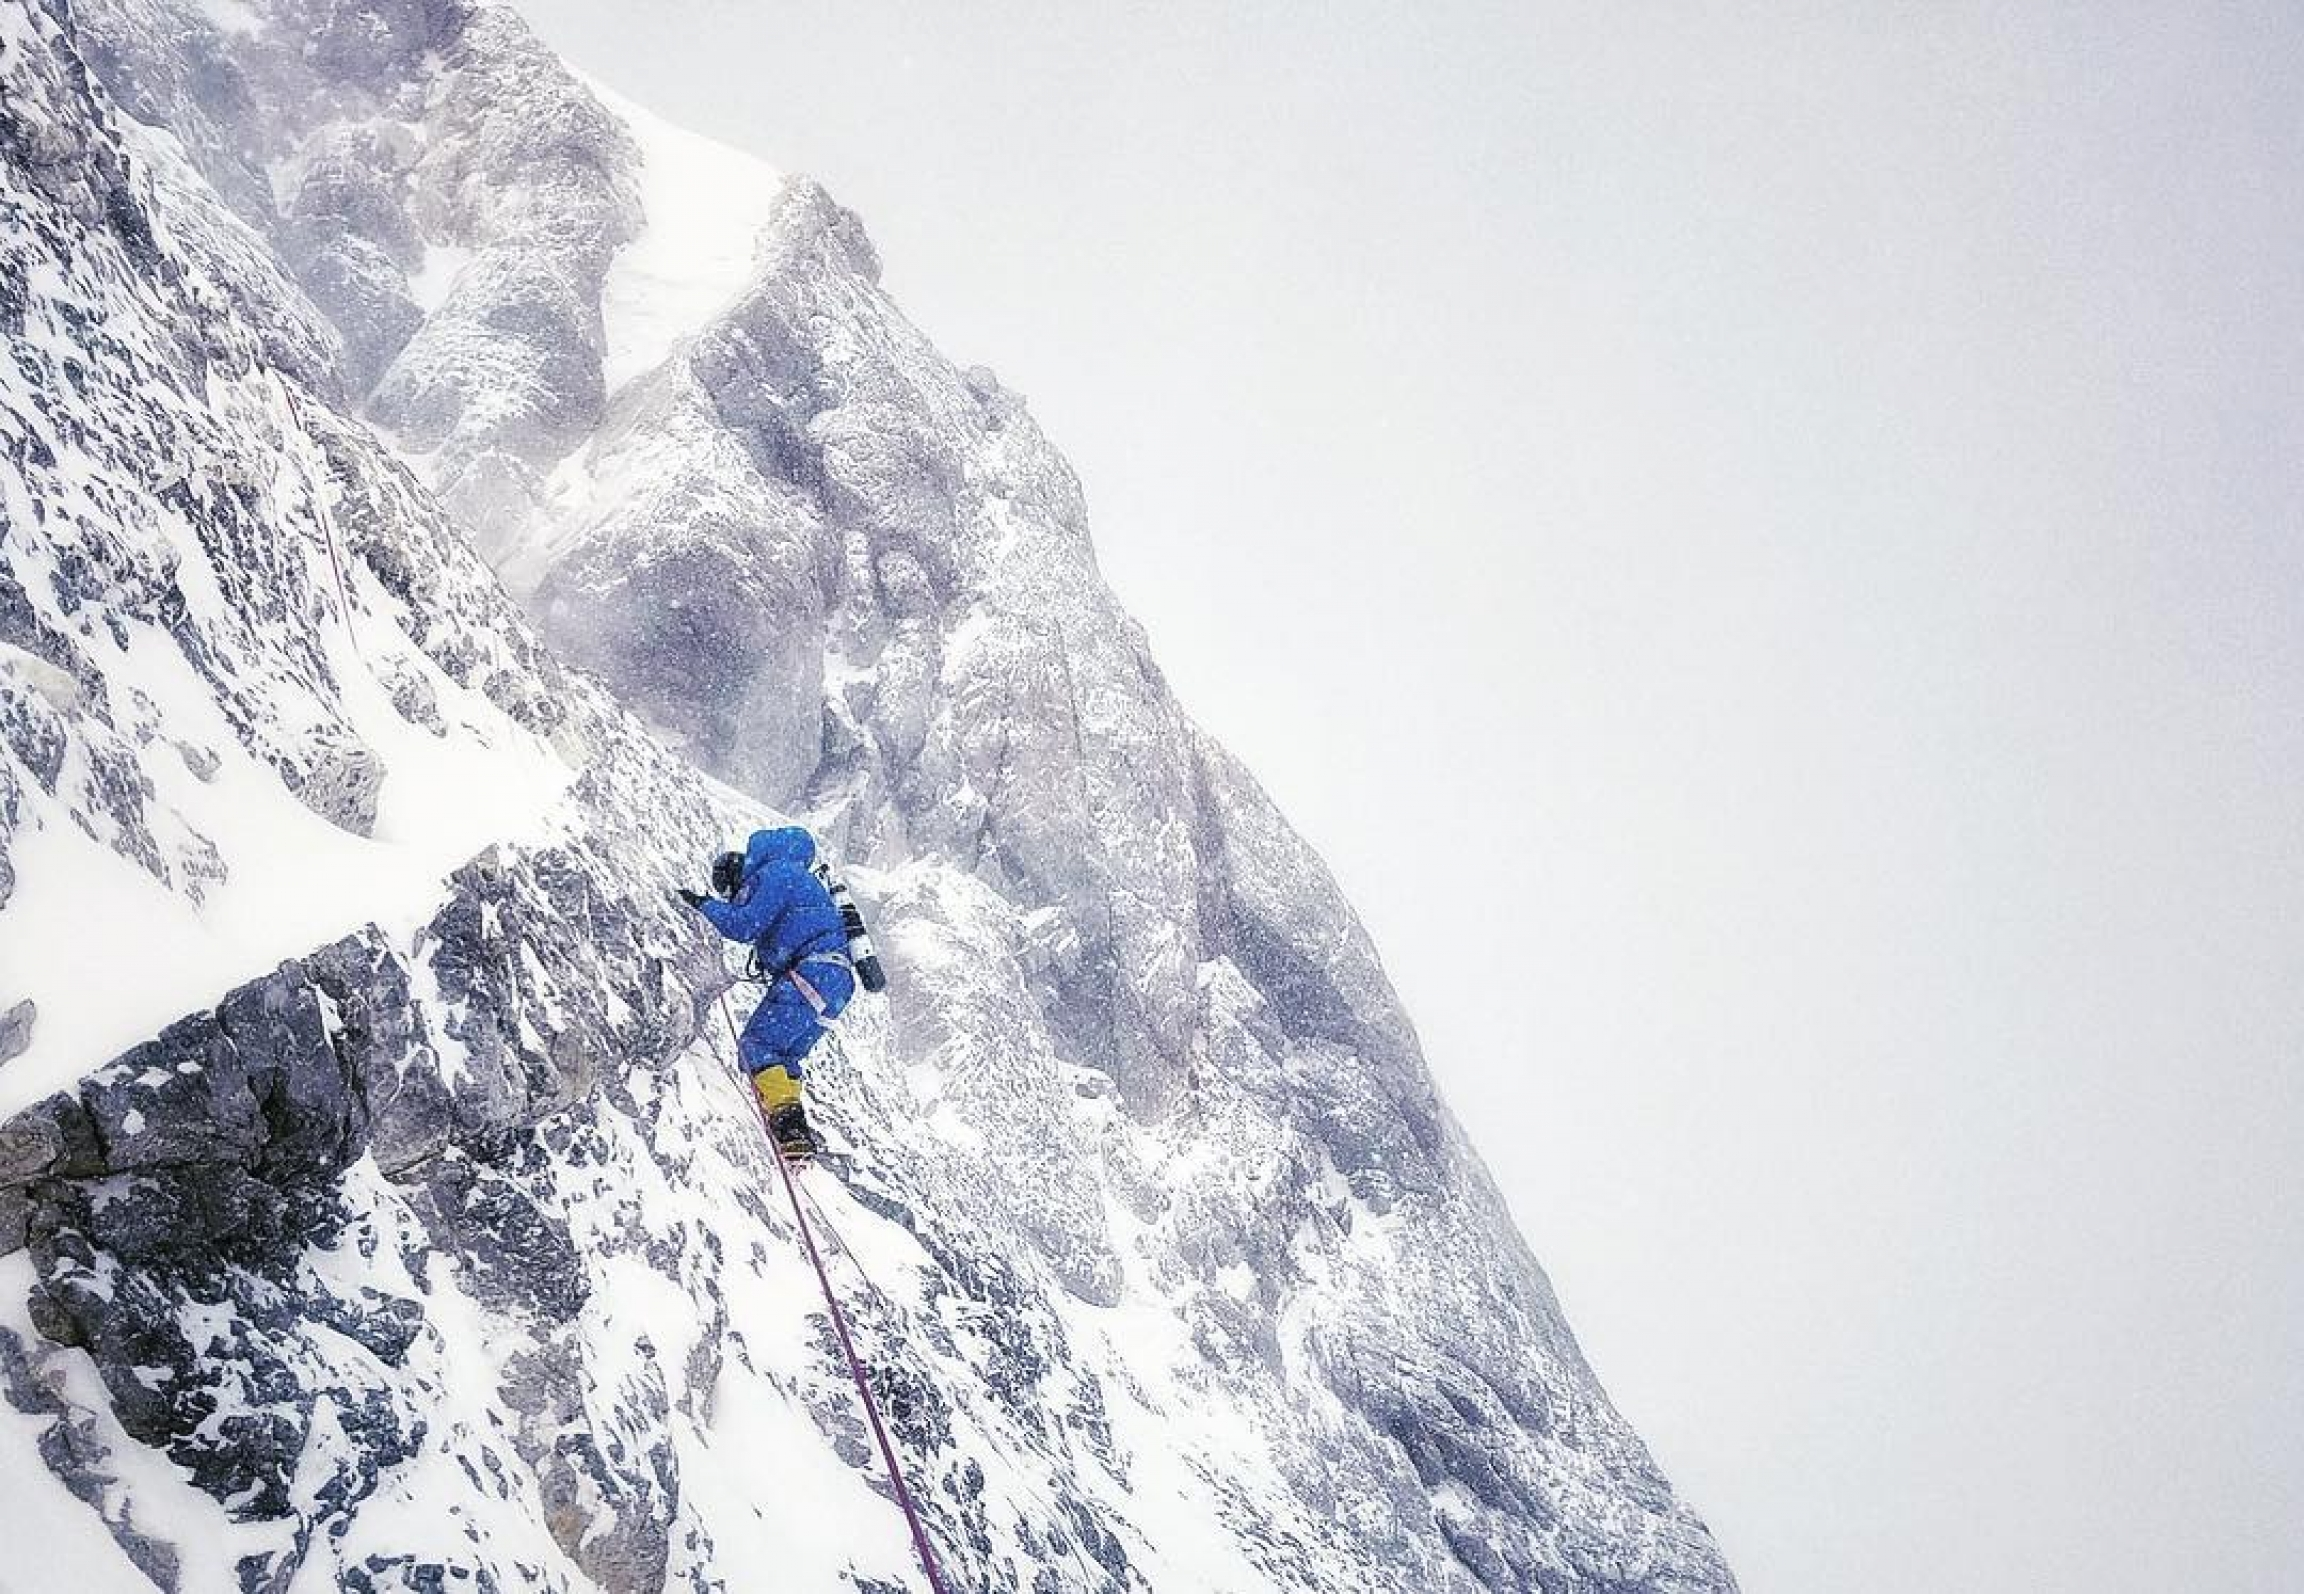 A person wearing blue mountain climbing suit and yellow boots climbs a rocky face on Mount Everest